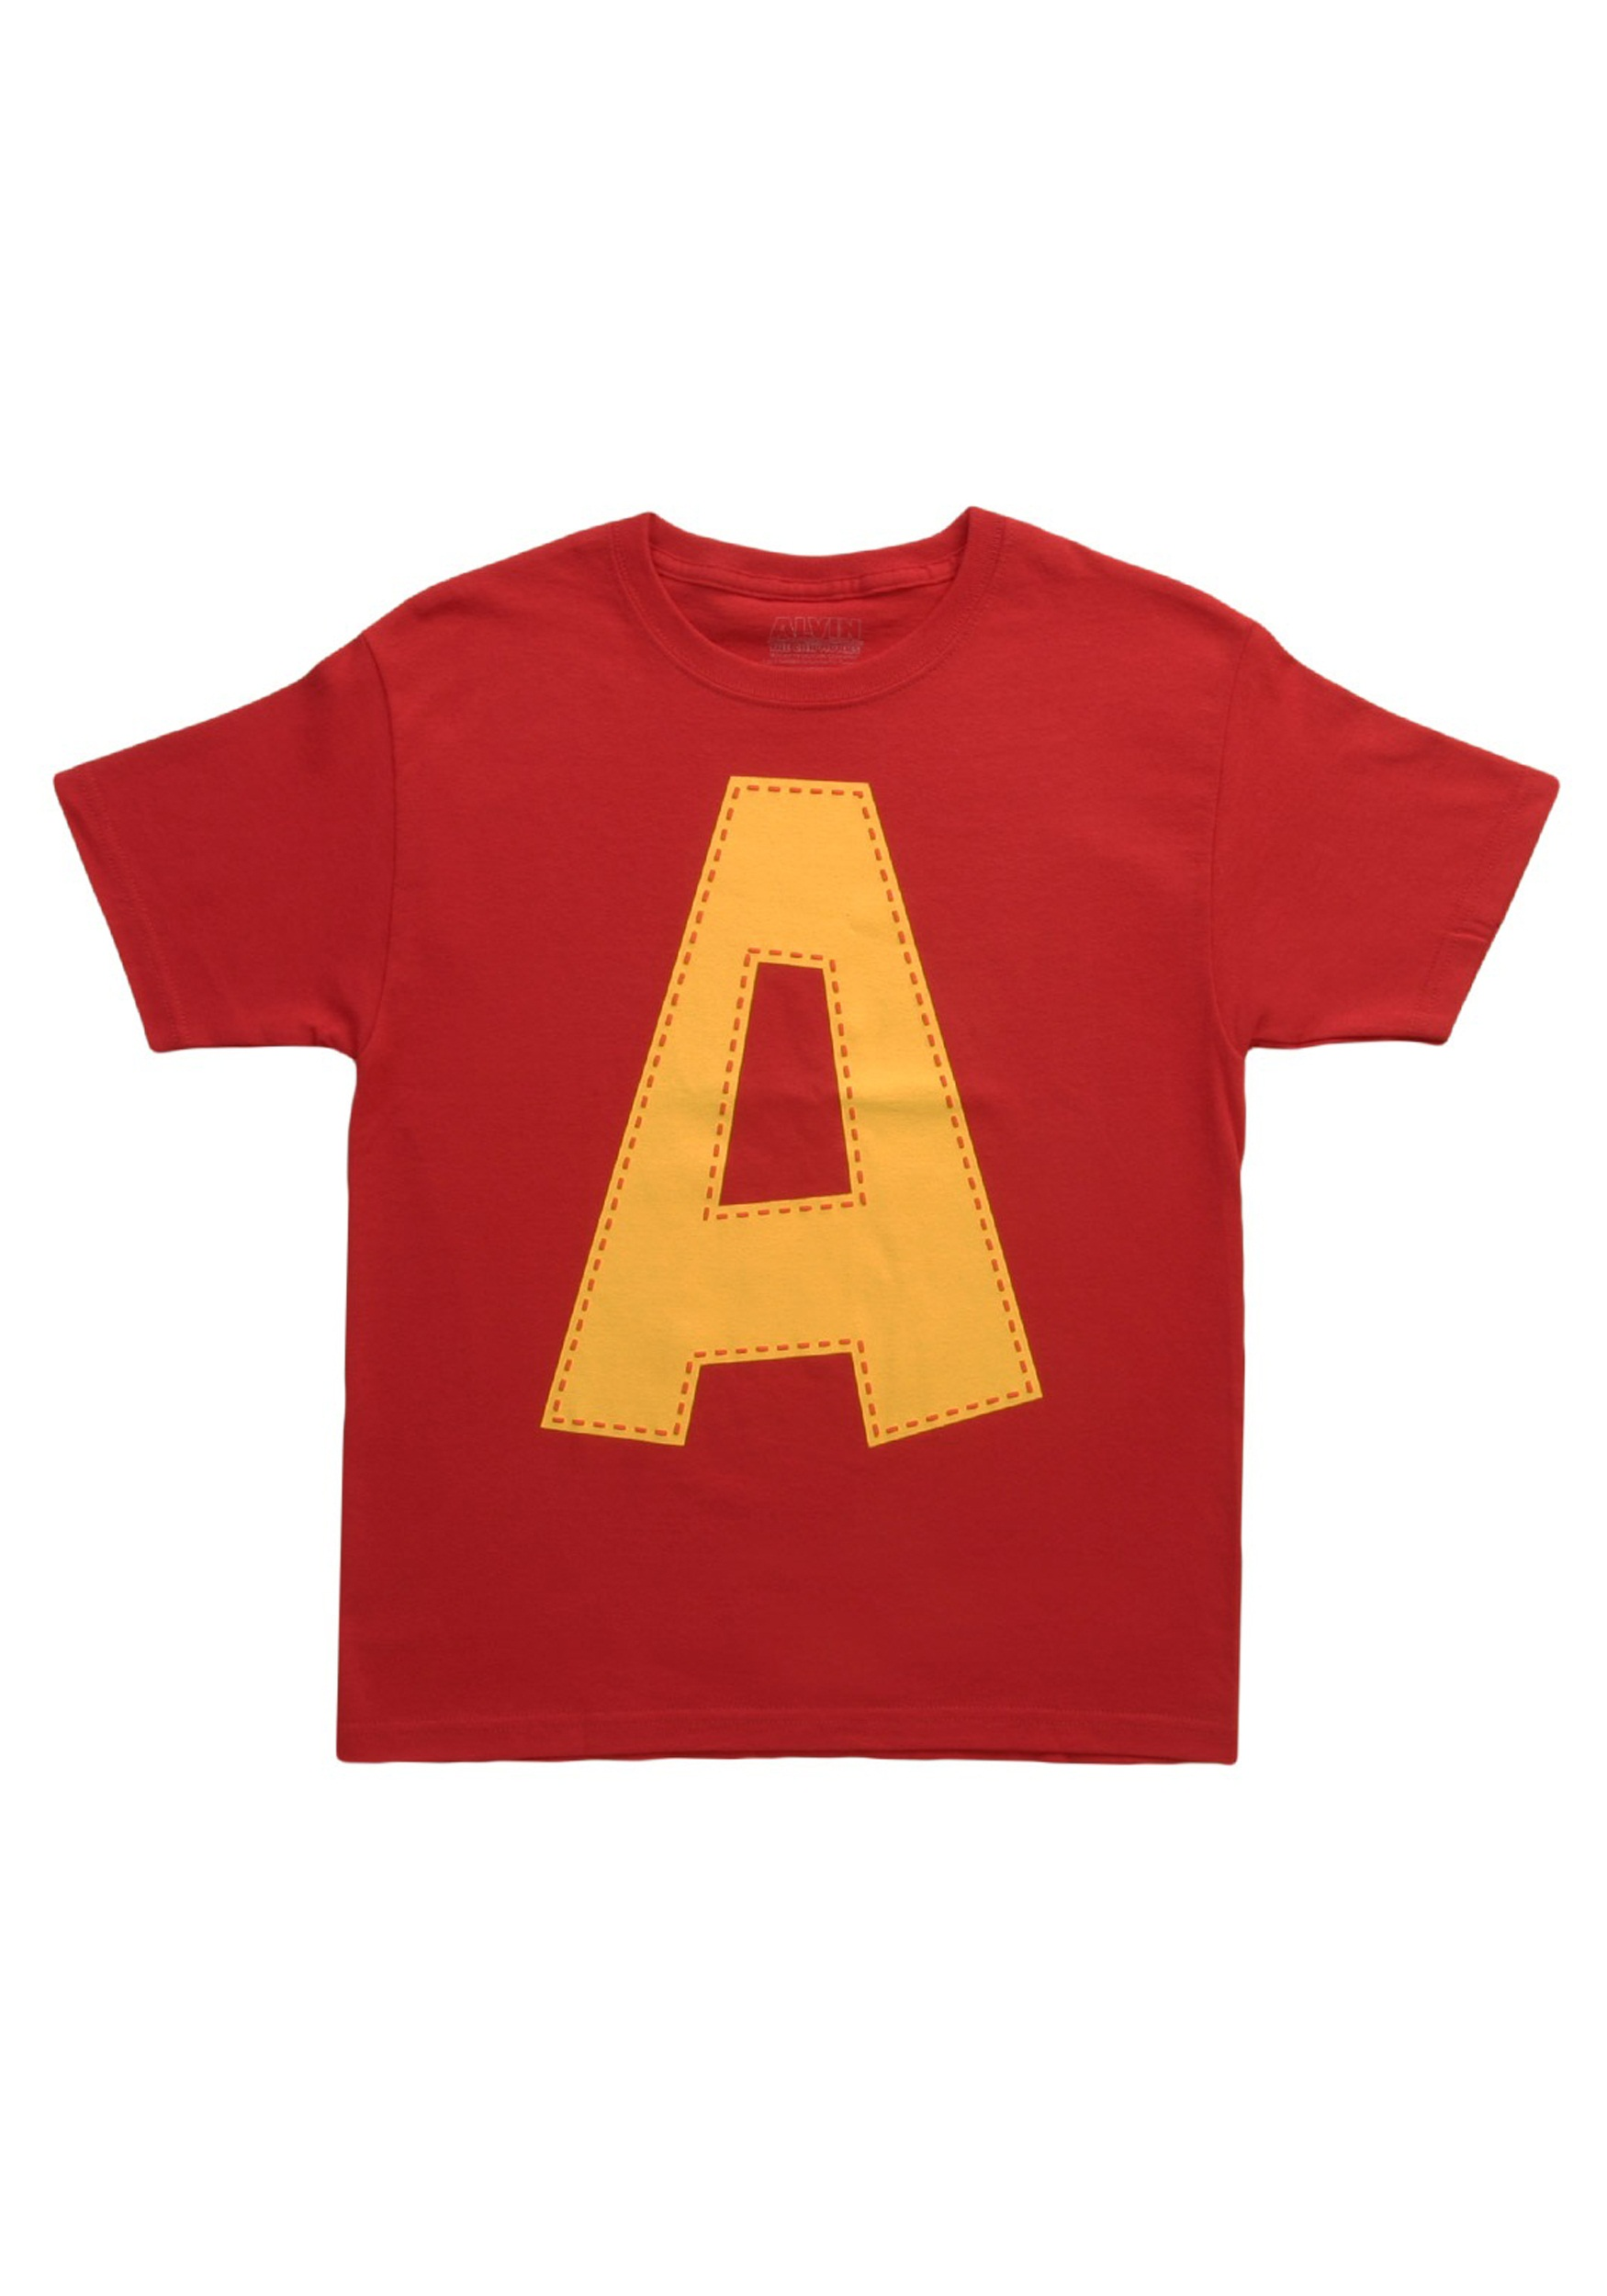 Kids alvin a costume t shirt halloween costumes for Costume t shirts online